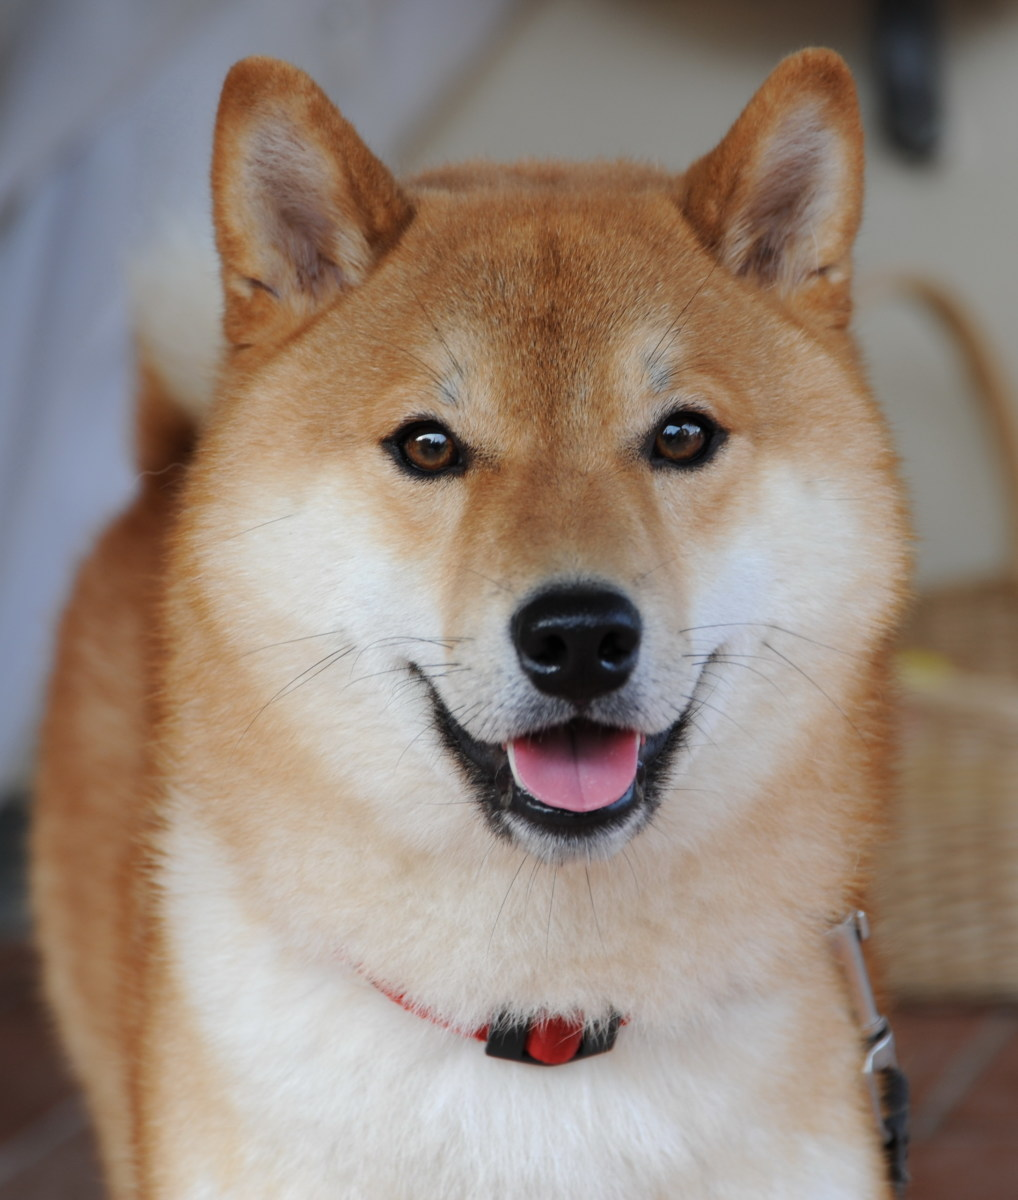 A Shiba Inu is a good choice if you want a dog that can be on its own for long periods while you are at work.